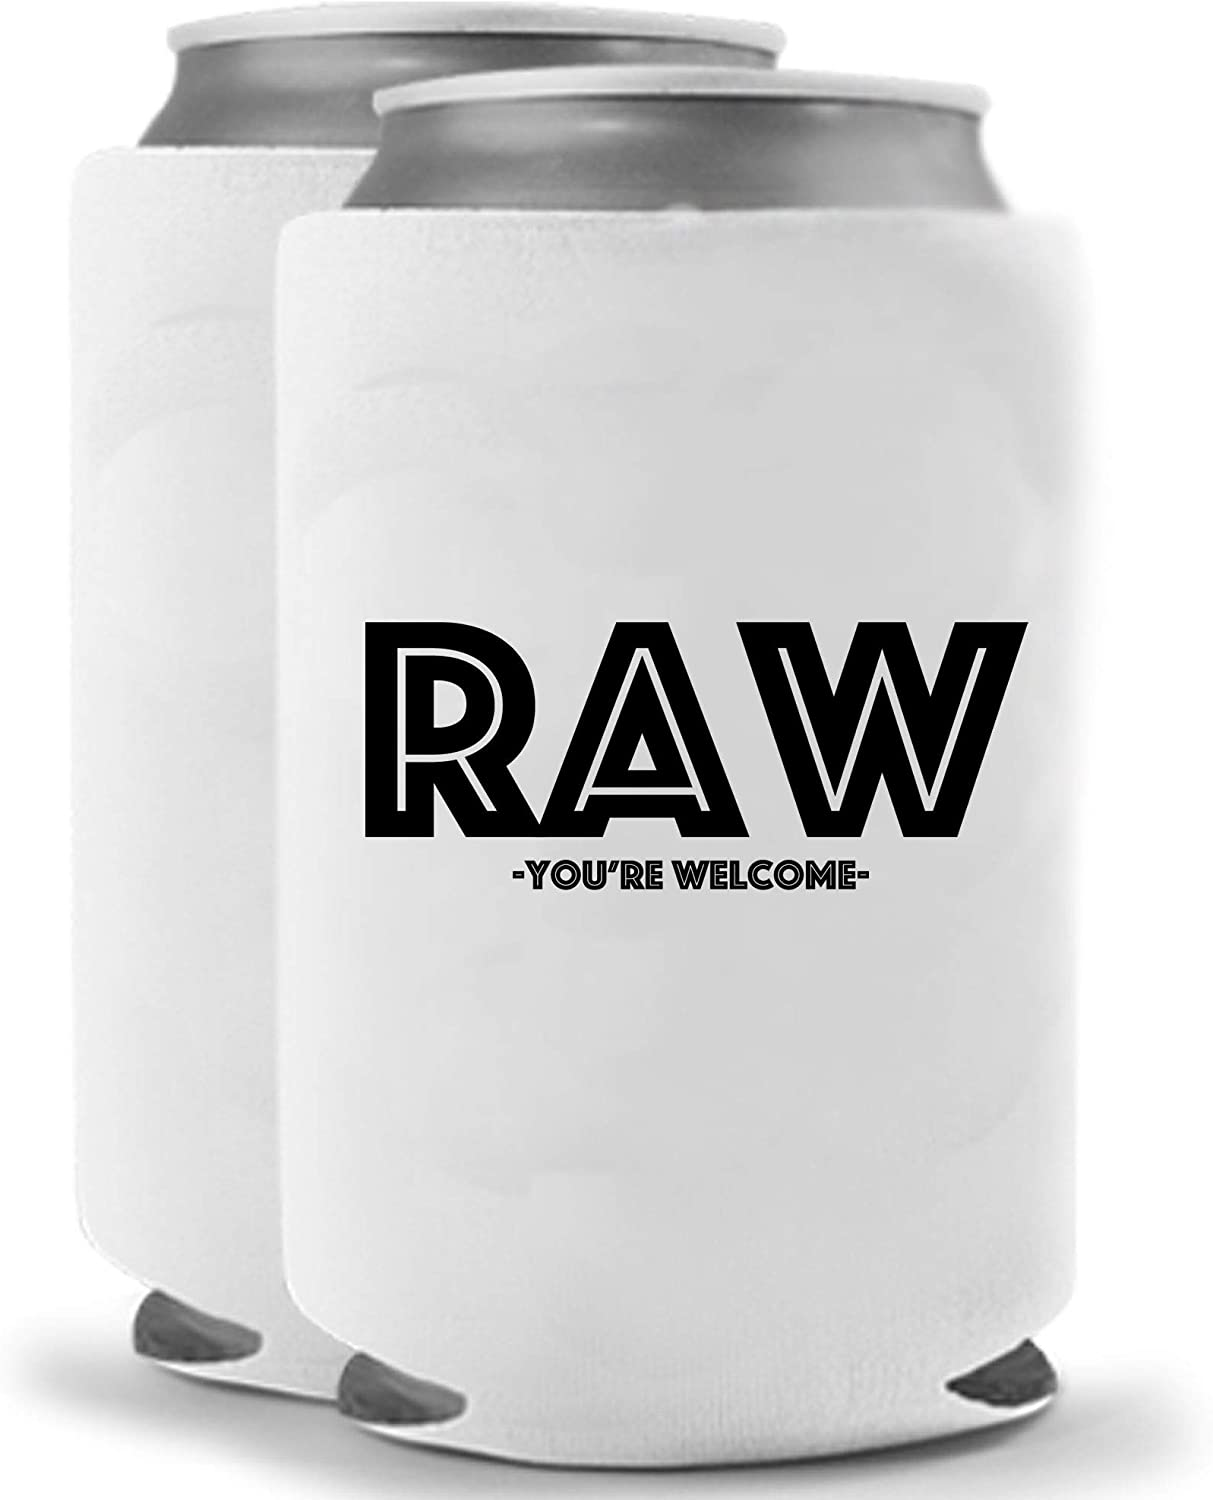 Raw | Set of Two (2) | Can Coolers | Naughty Inappropriate Crude Funny - Coolies | Huggies Hugger | Insulated Beverage Holder for Parties Pranks Jokes (Raw)